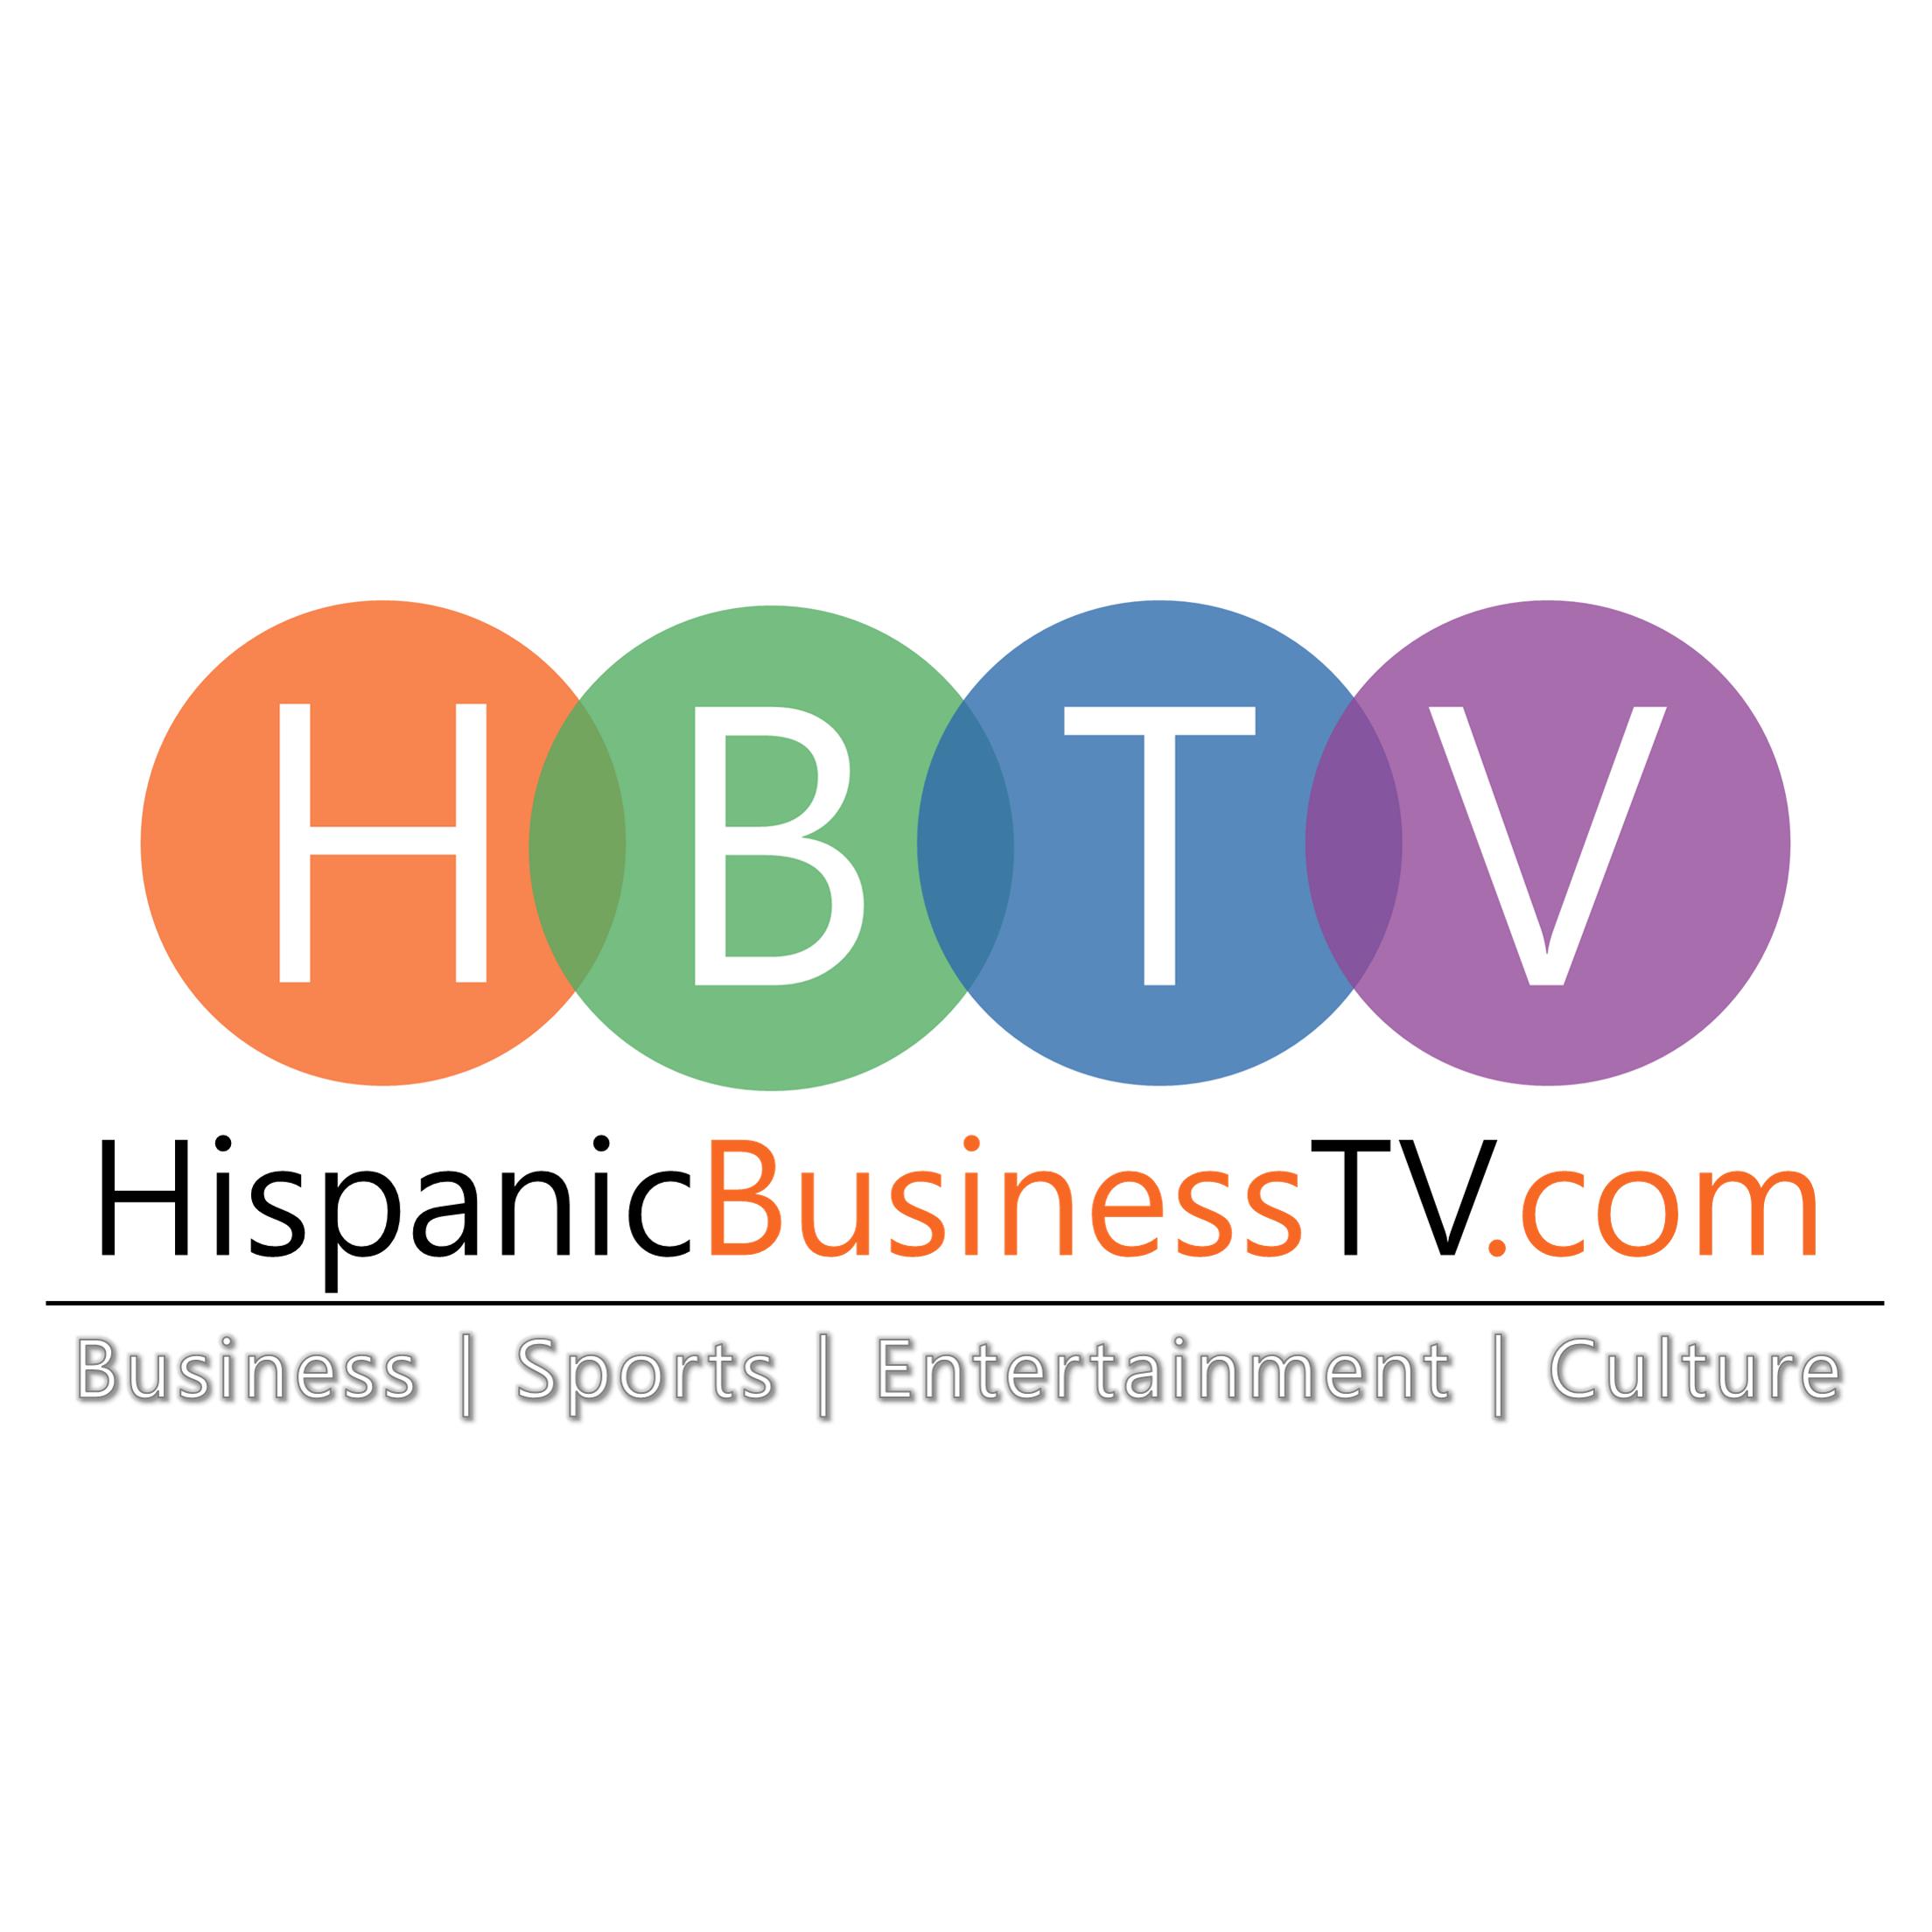 HispanicBusinessTV.com